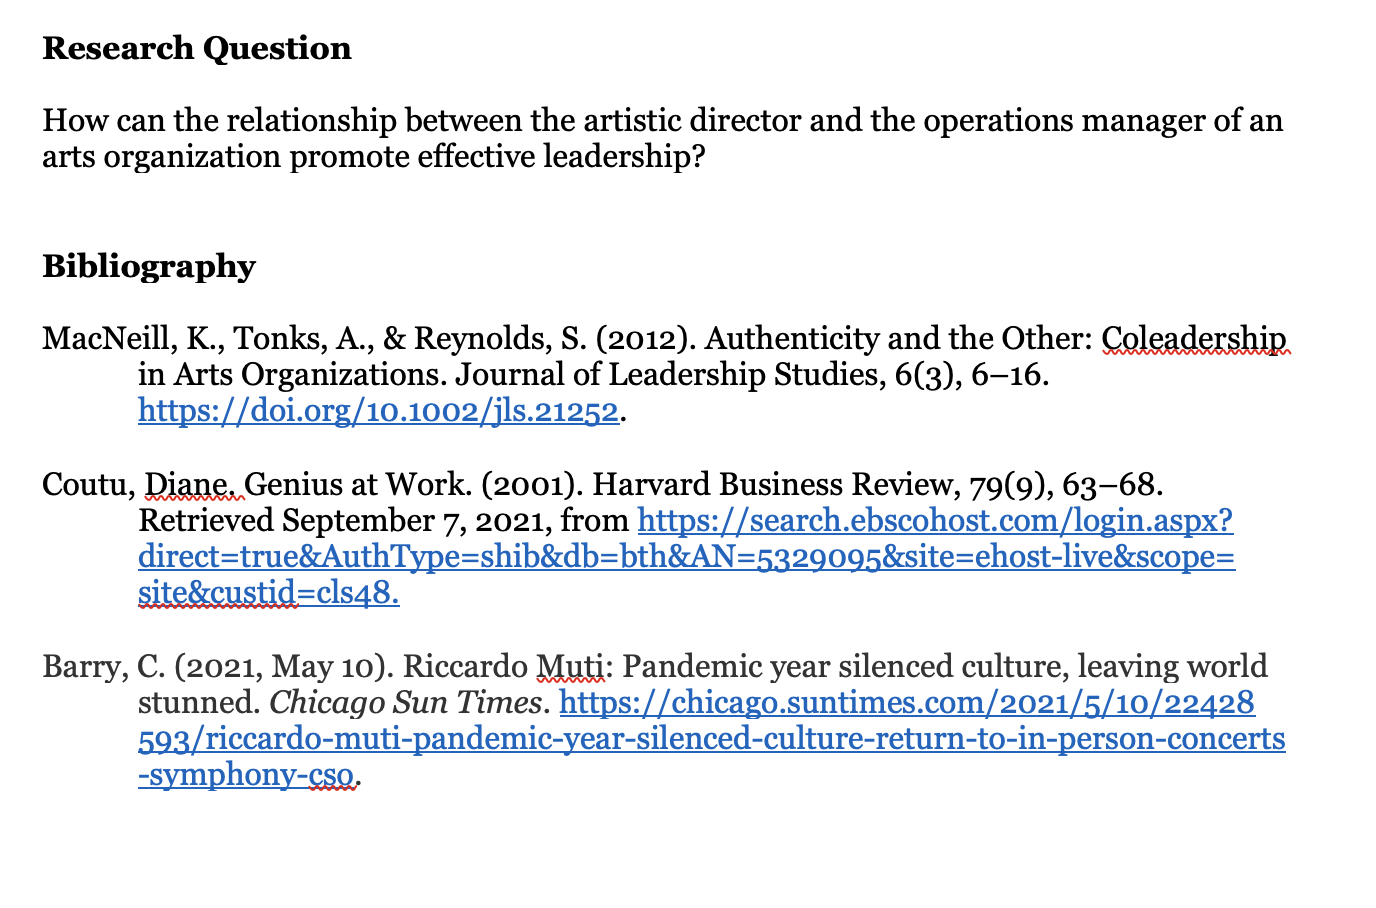 Image of a research question and bibliography